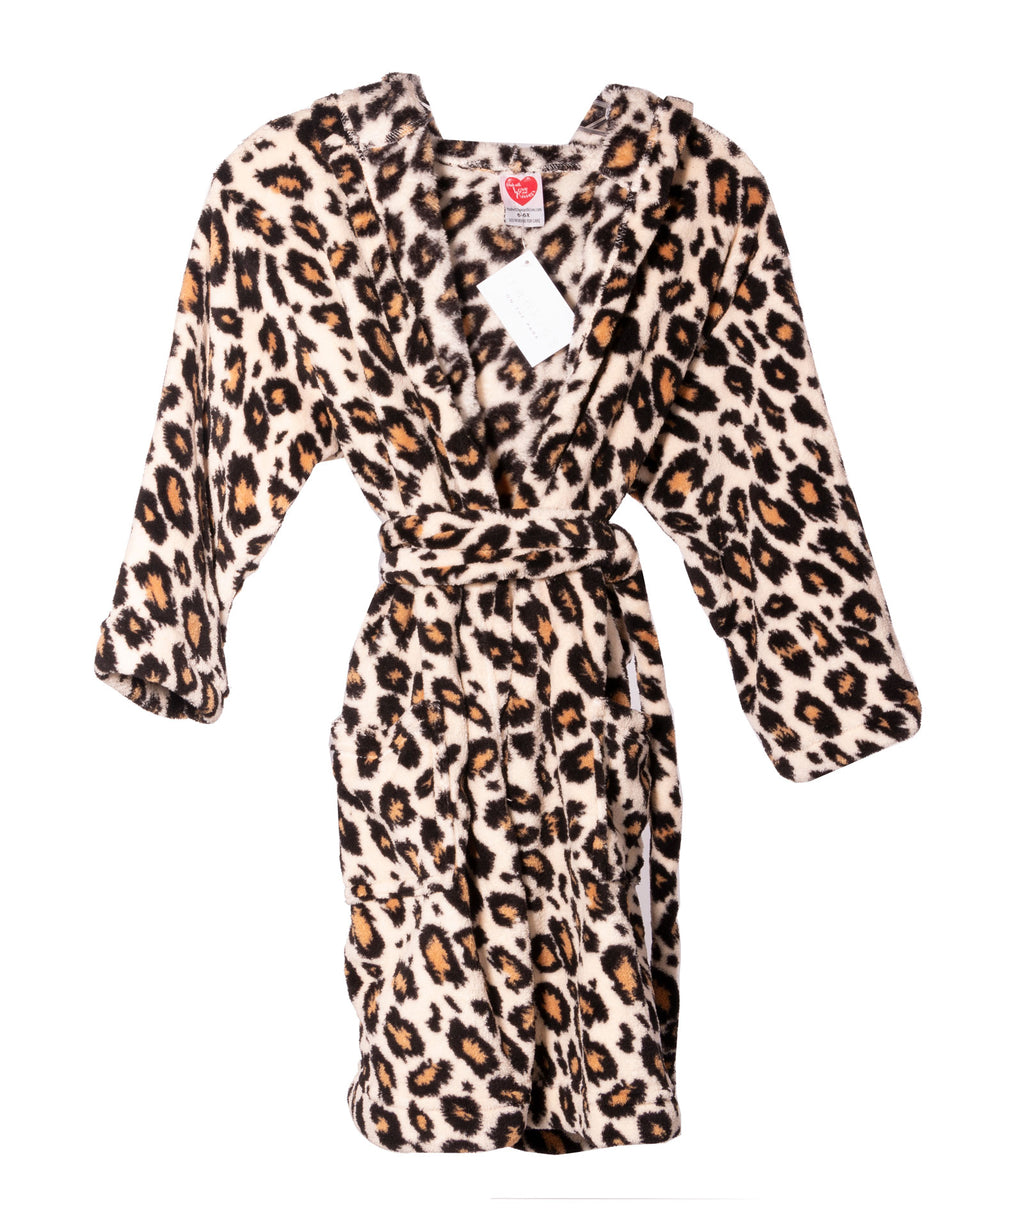 Made with Love and Kisses Girls Leopard Robe